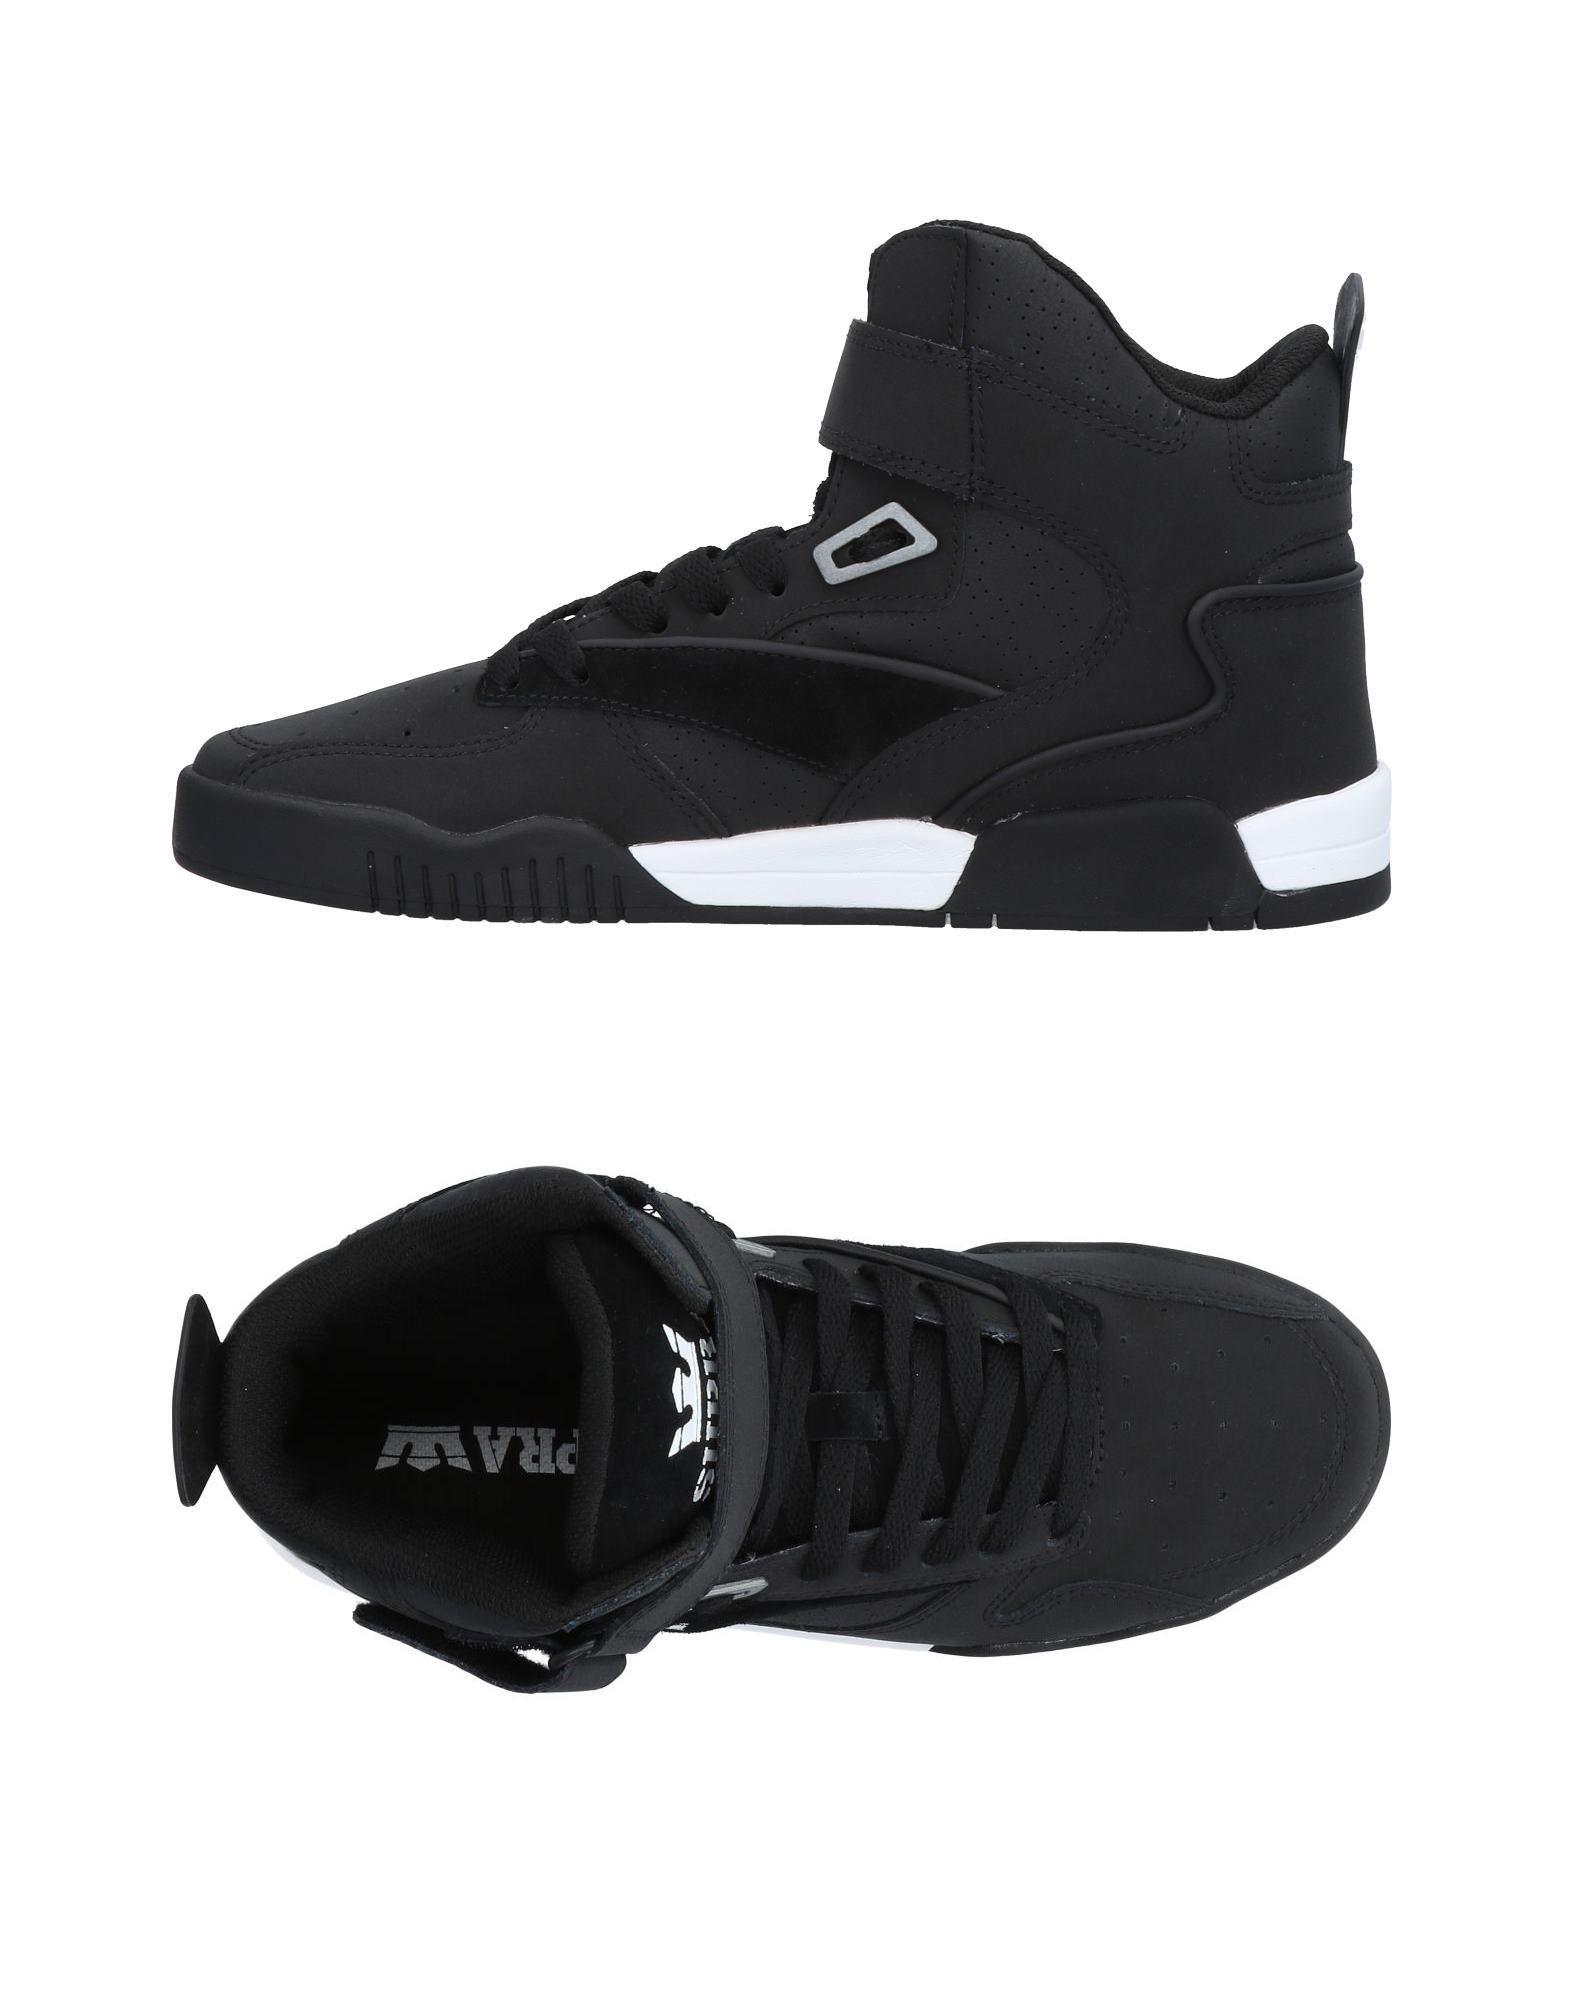 aac5a4b18a4d Lyst - Supra High-tops   Sneakers in Black for Men